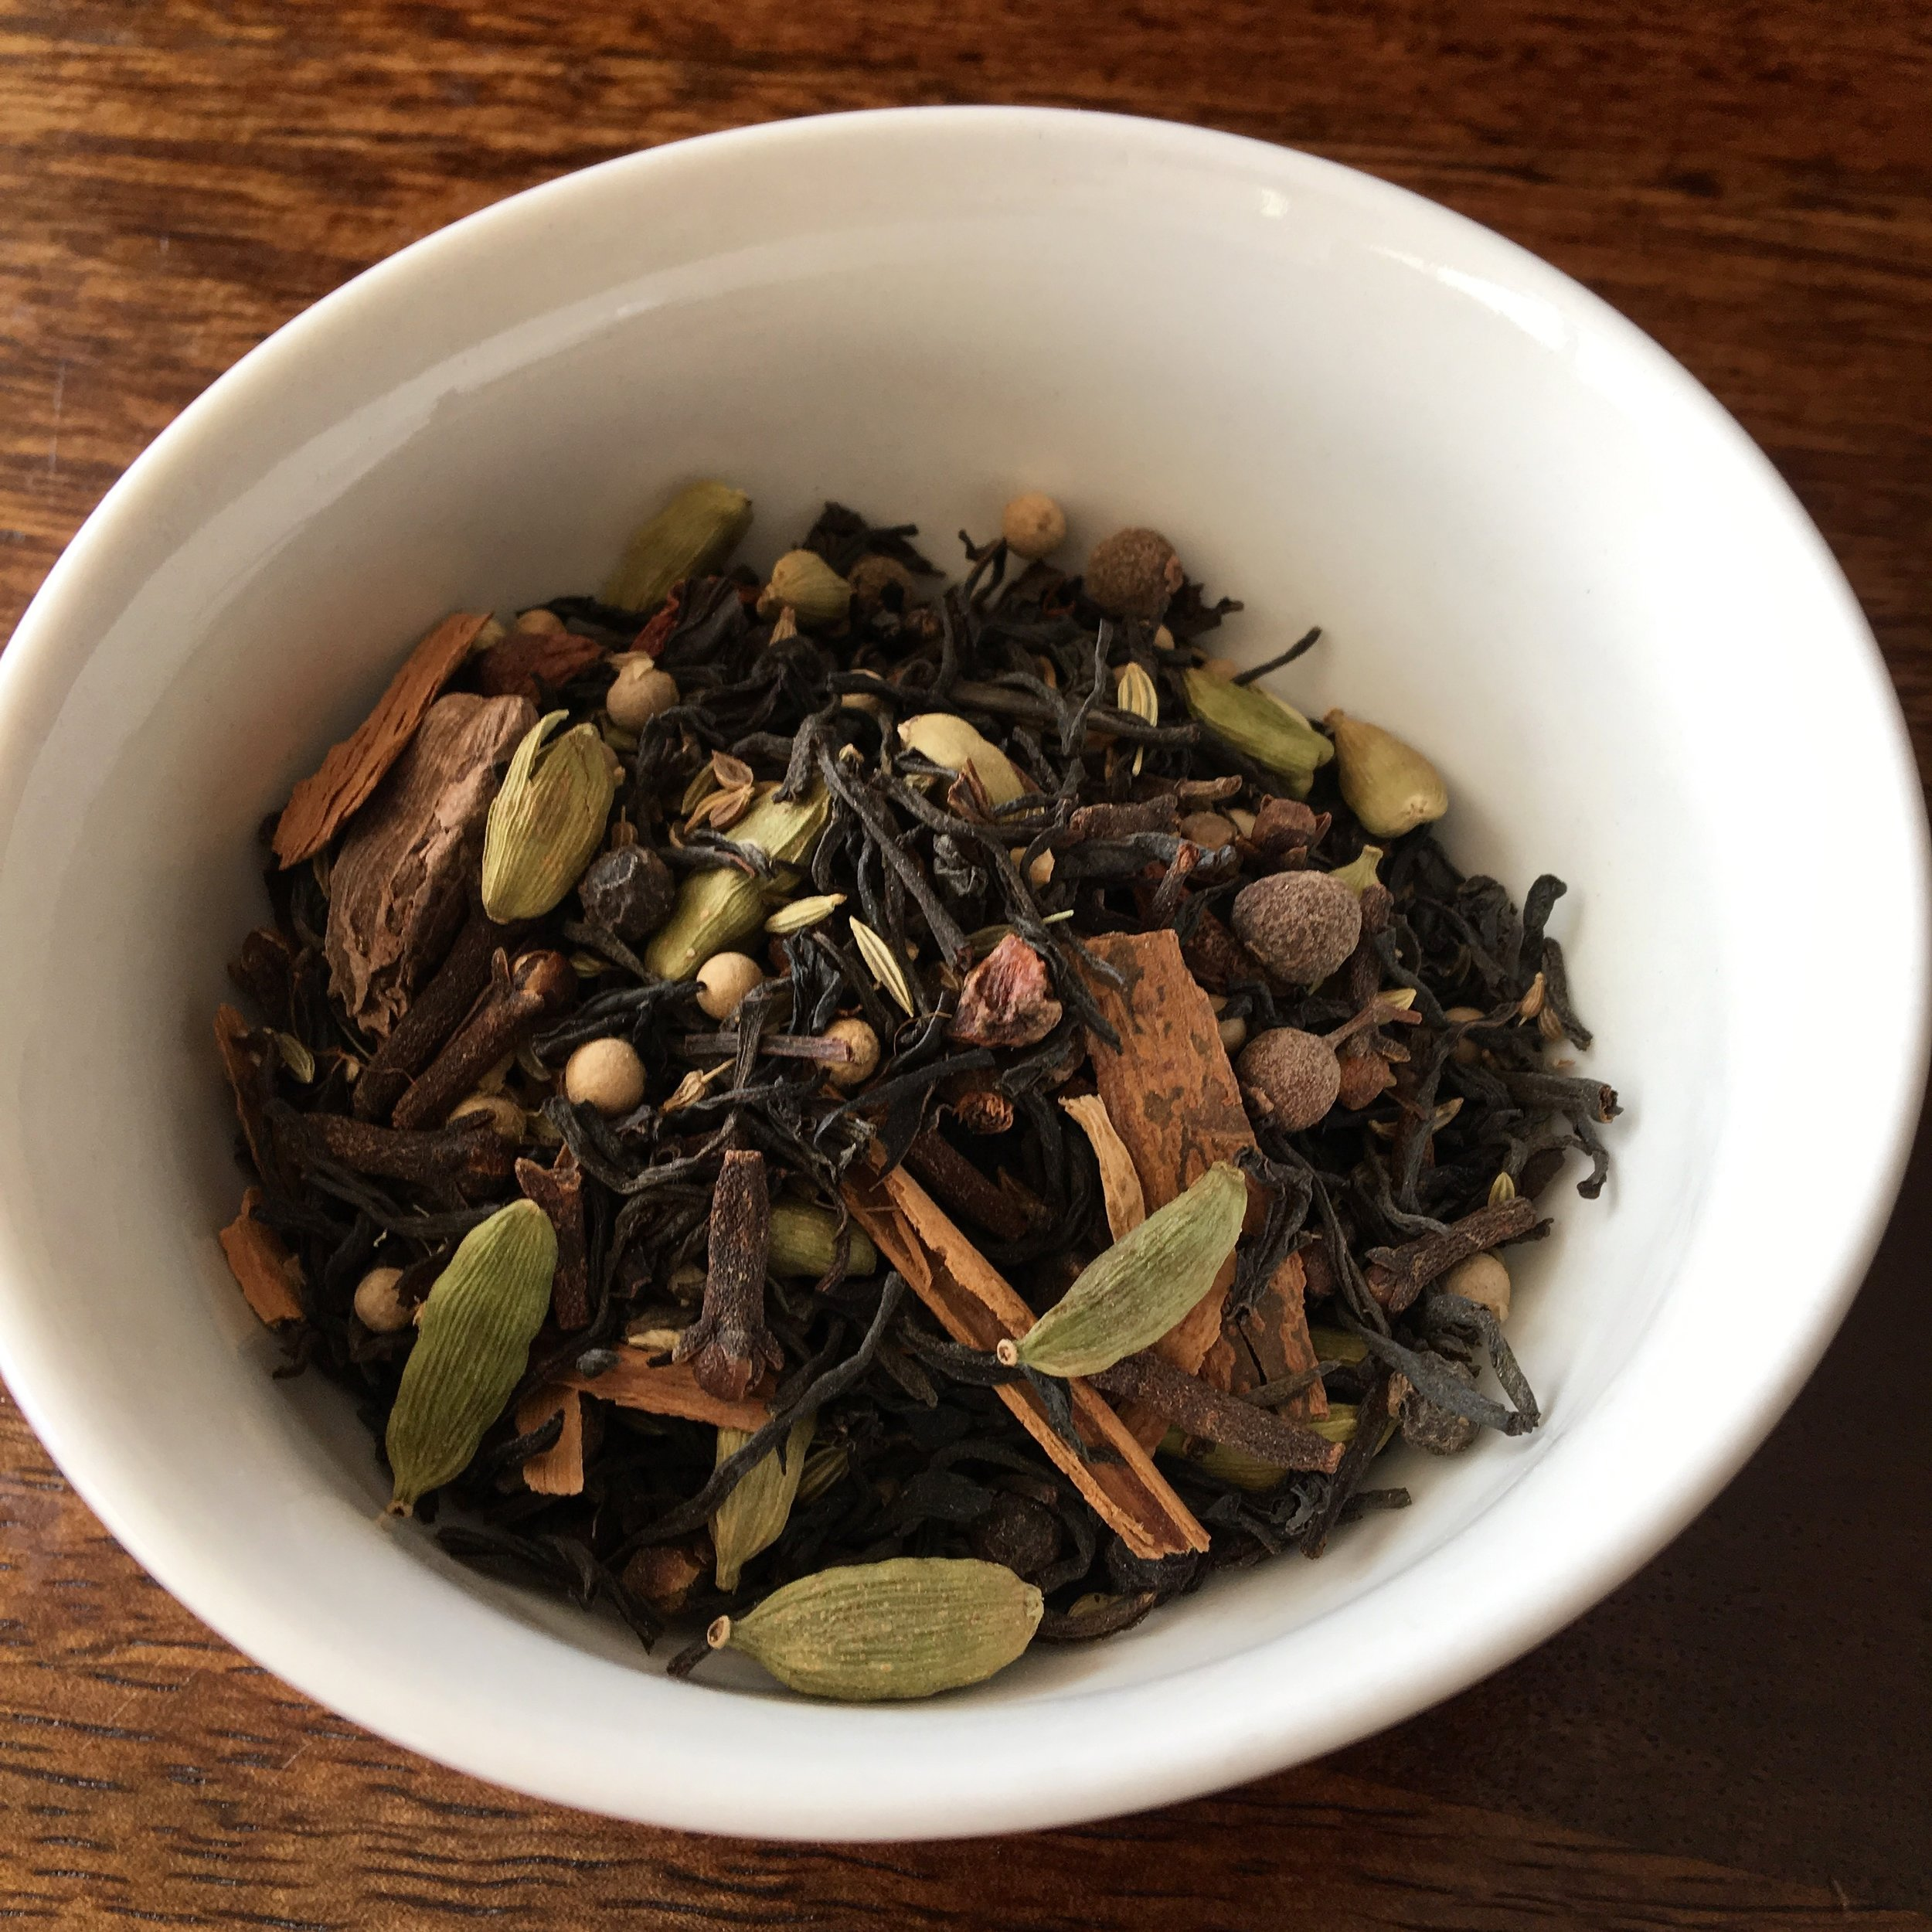 My own masala chai spice blend combined with black Assam tea leaves